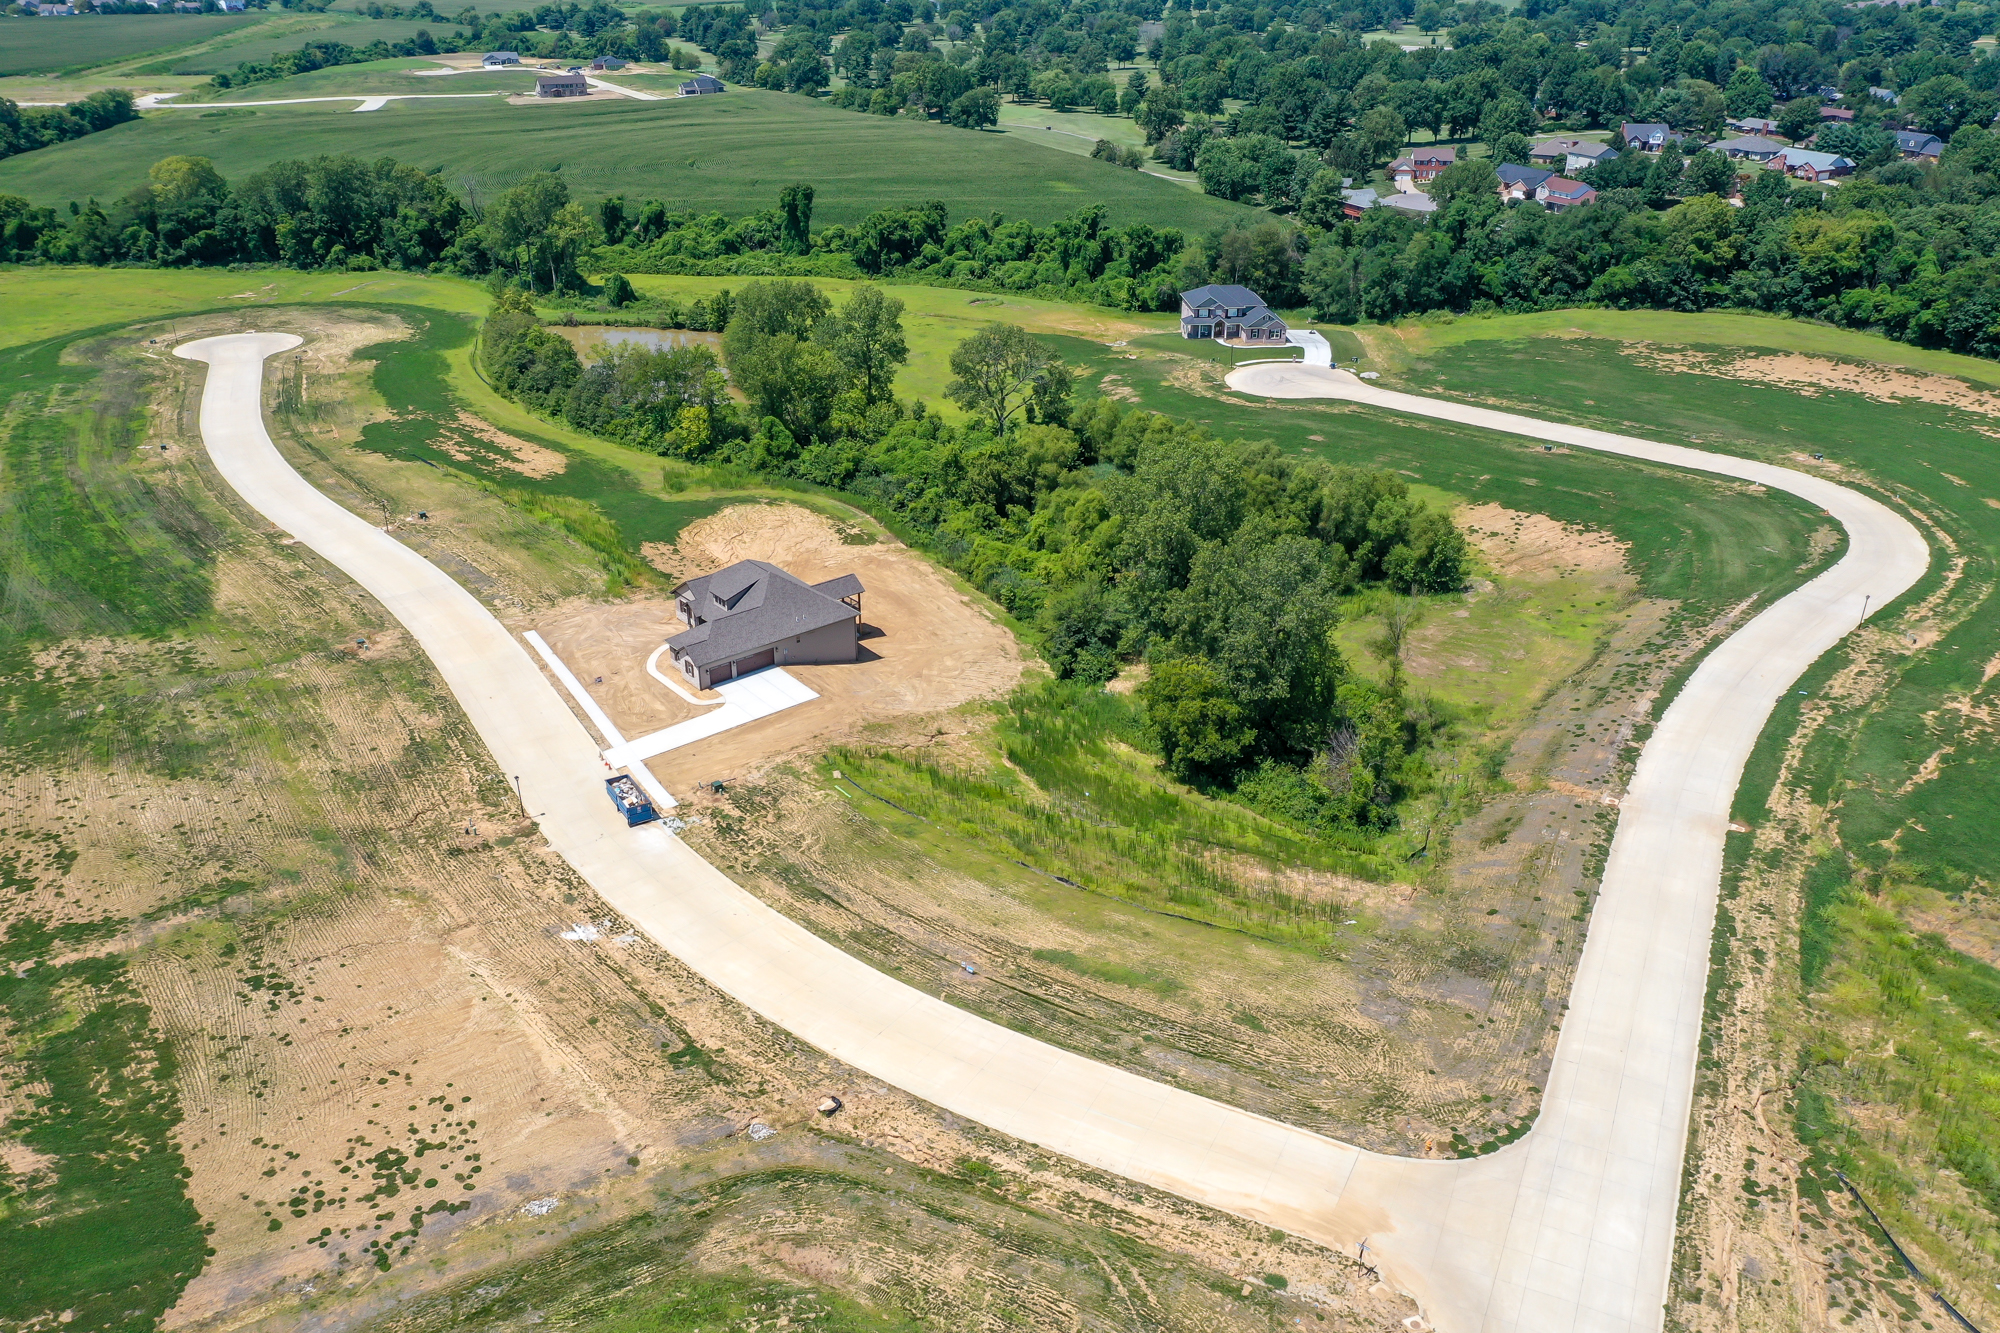 New_Construction_Homes_For_Sale_Shiloh_Illinois_Near_Scott_AFB-11.jpg